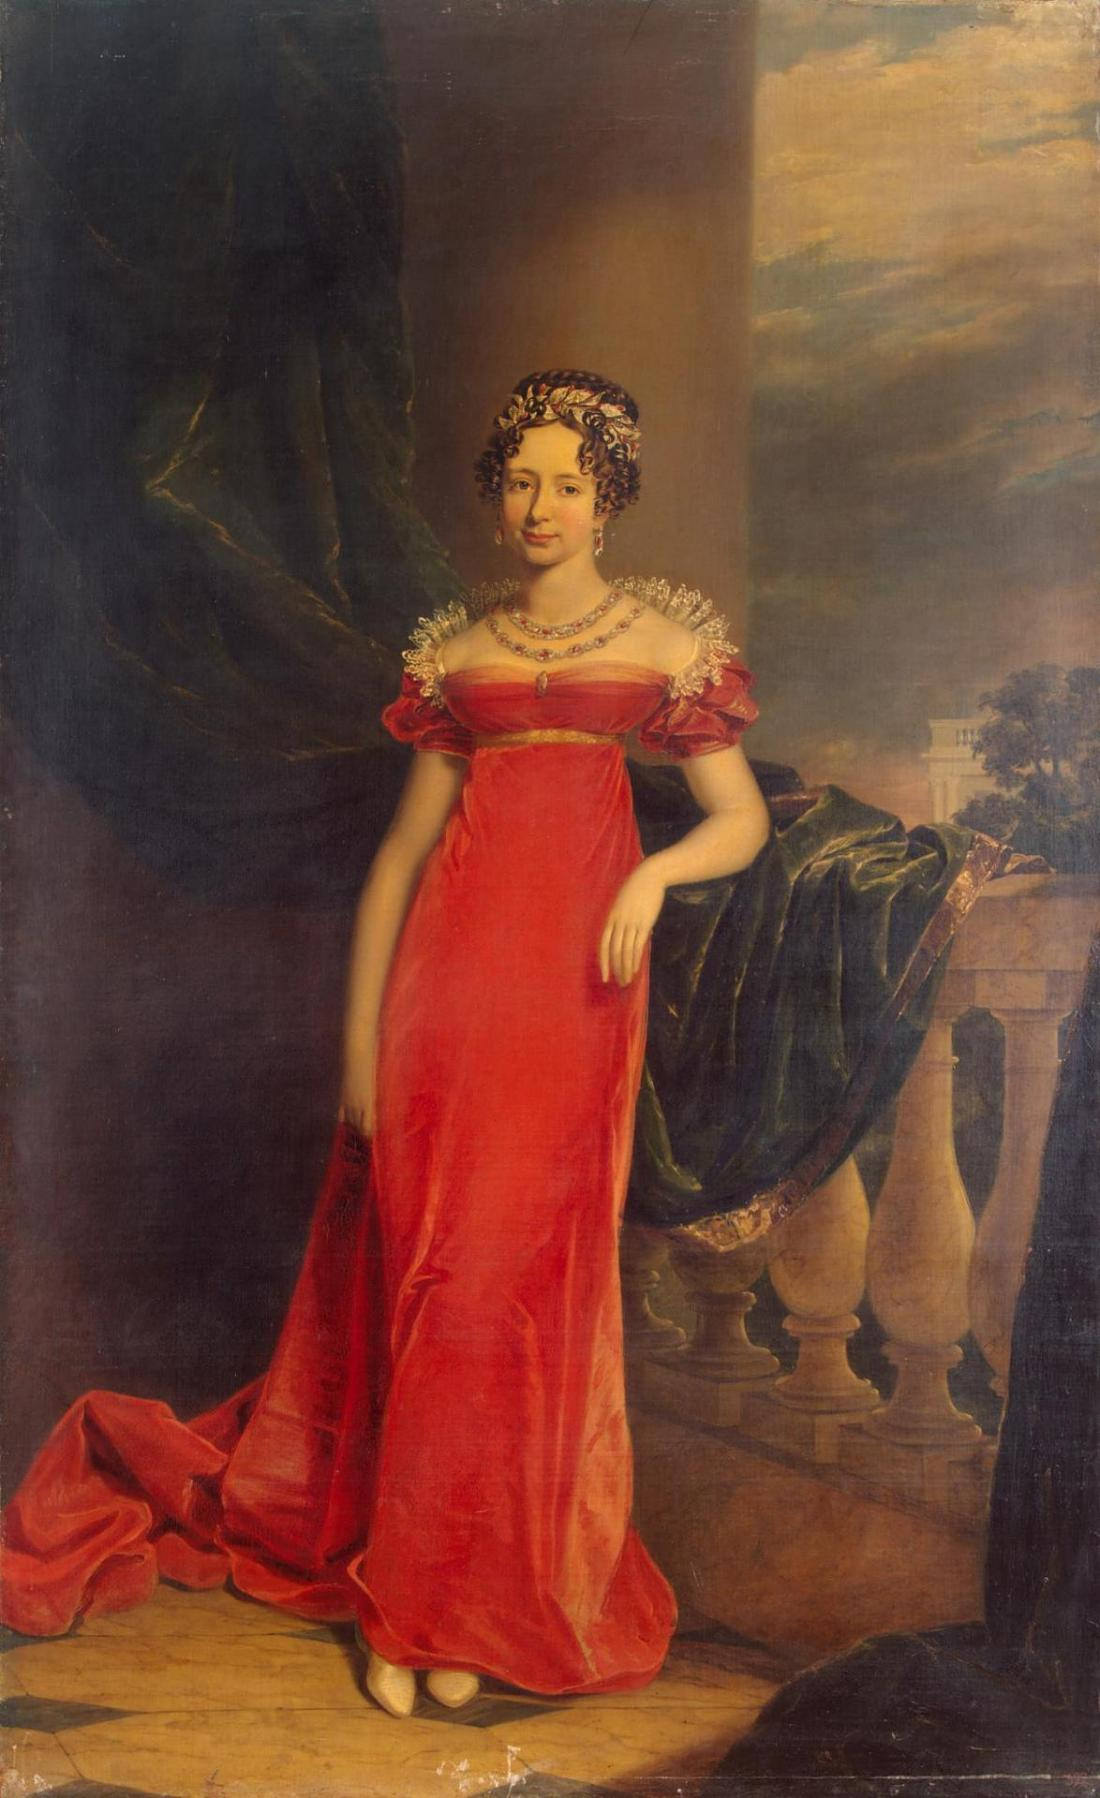 Grand Duchess Maria Pavlovna of Russia. 1822.